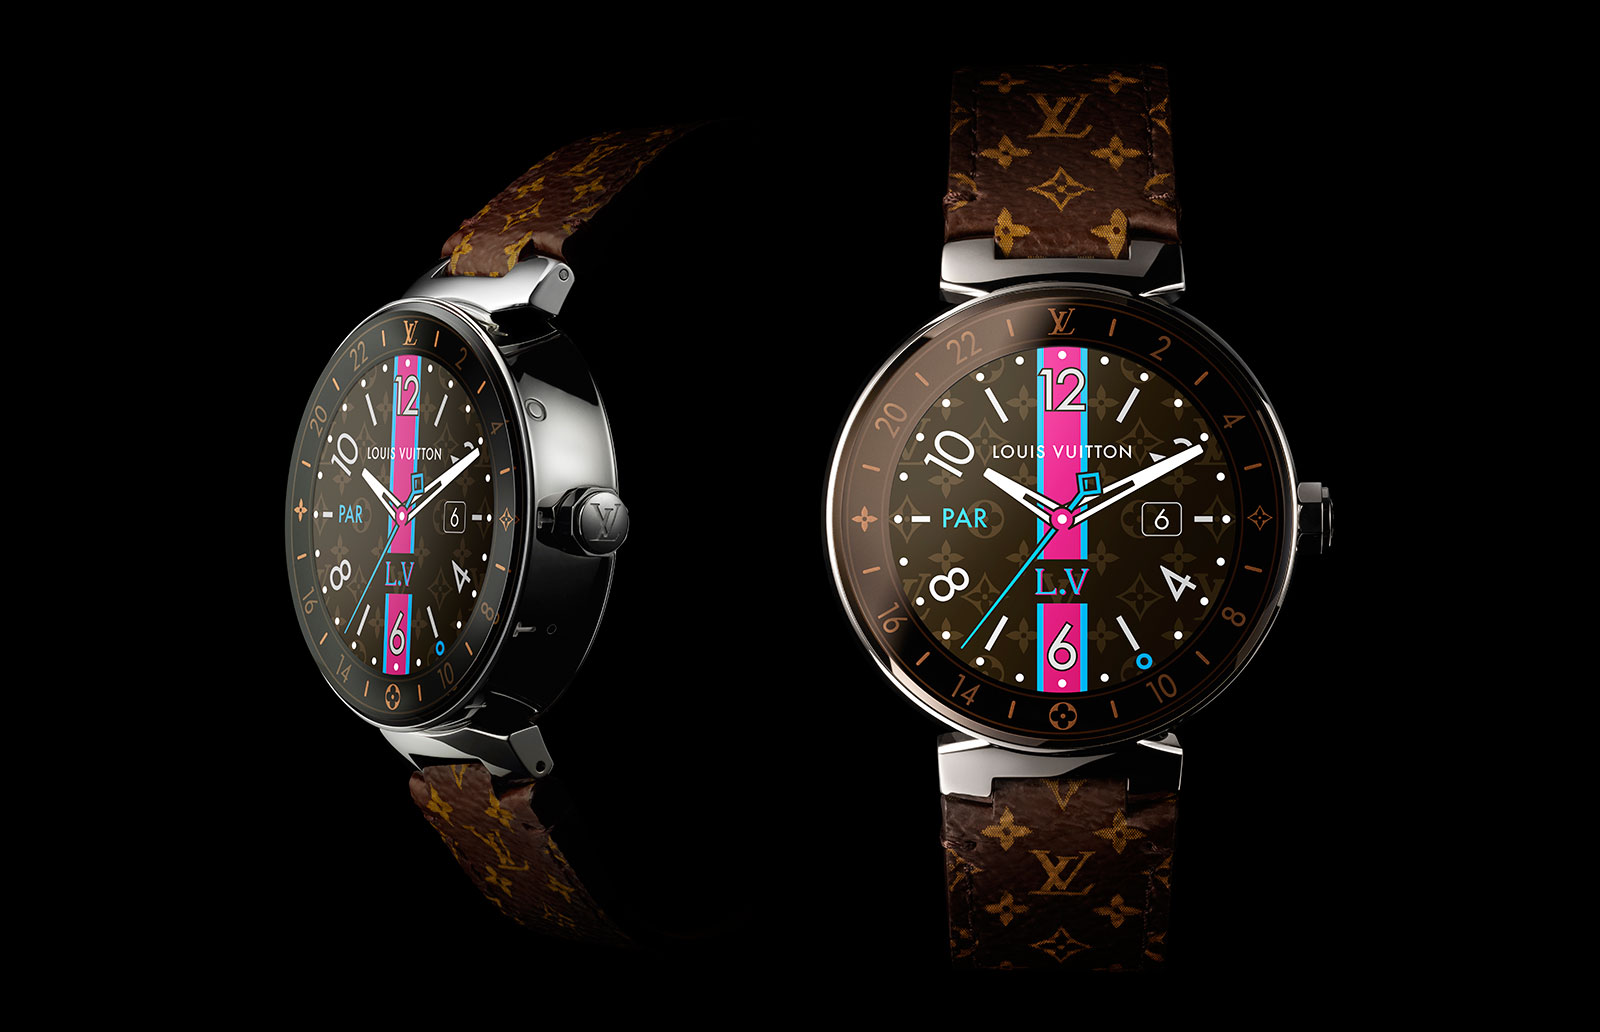 Louis Vuitton Tambour Horizon smartwatch 4